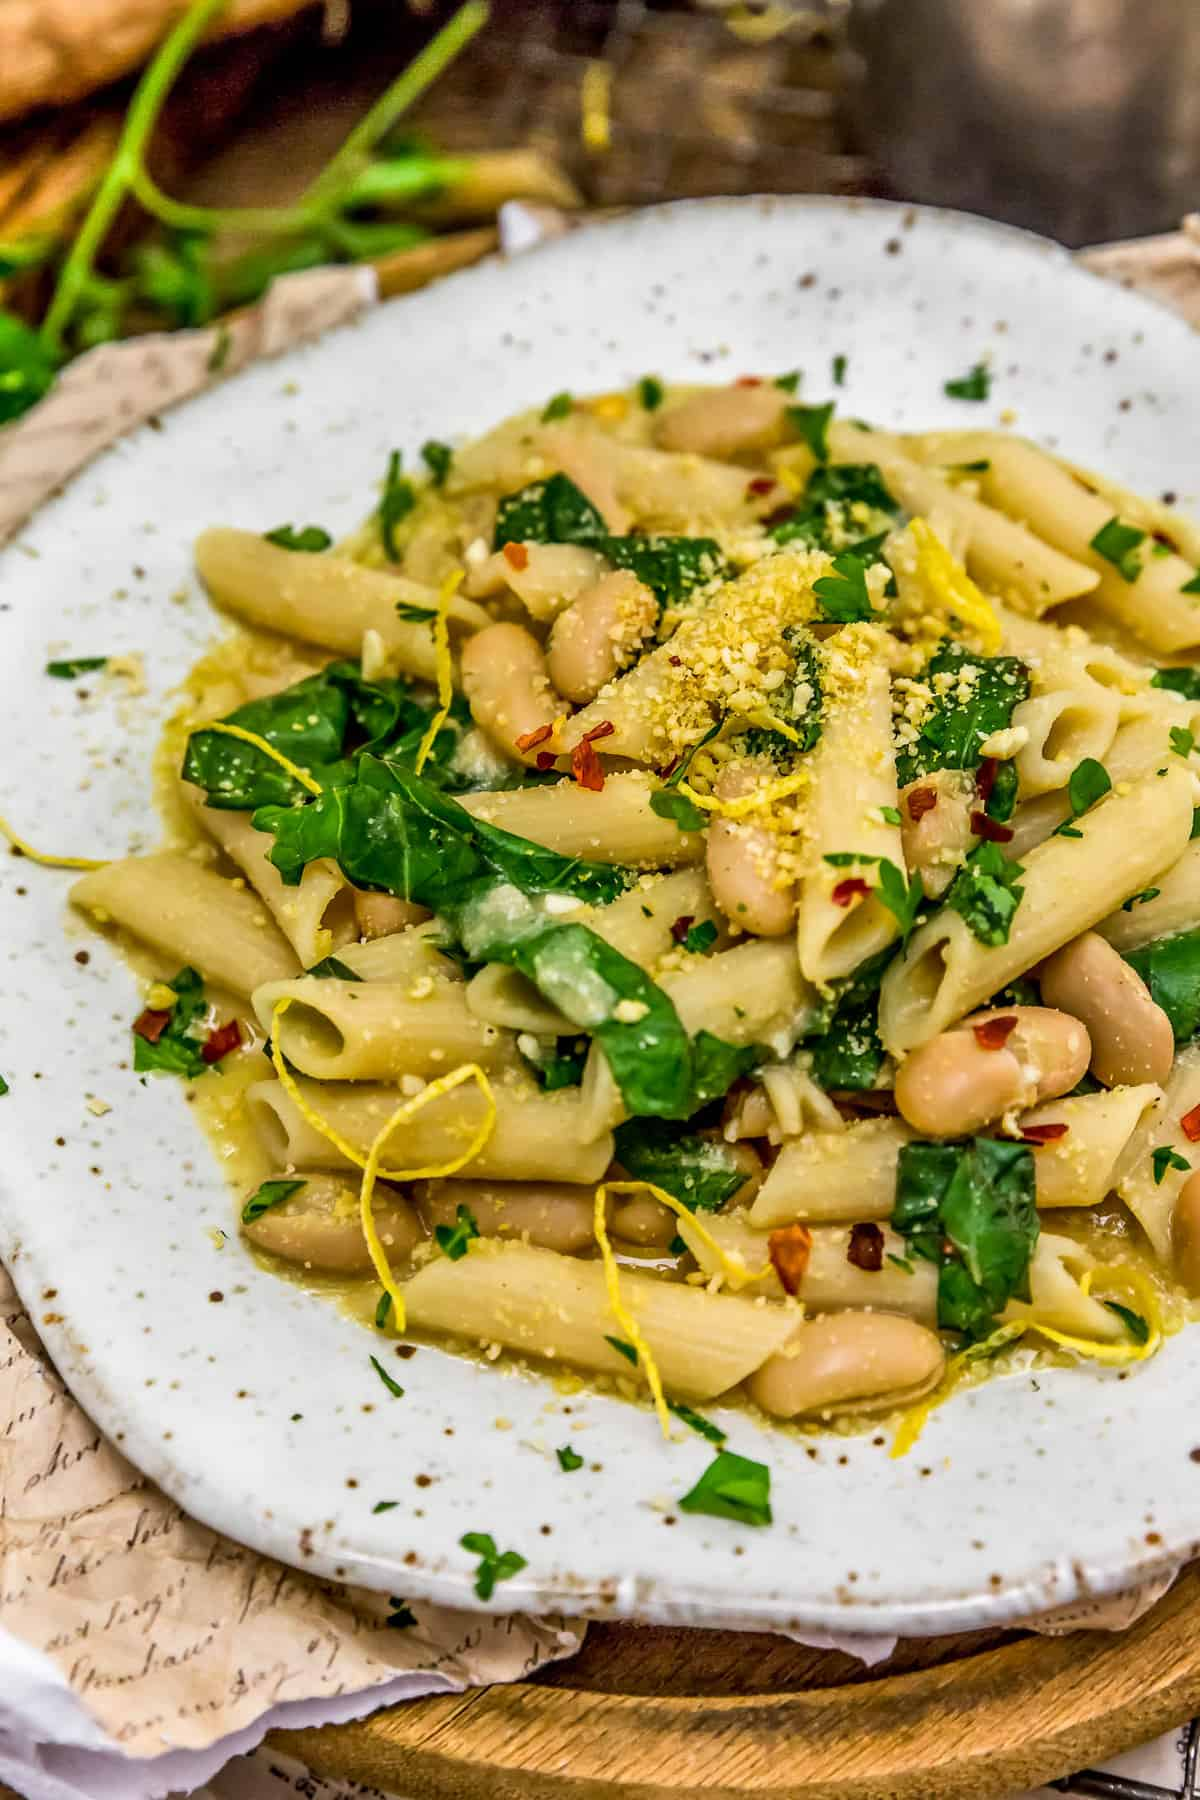 Lemony Pasta with Greens and Beans